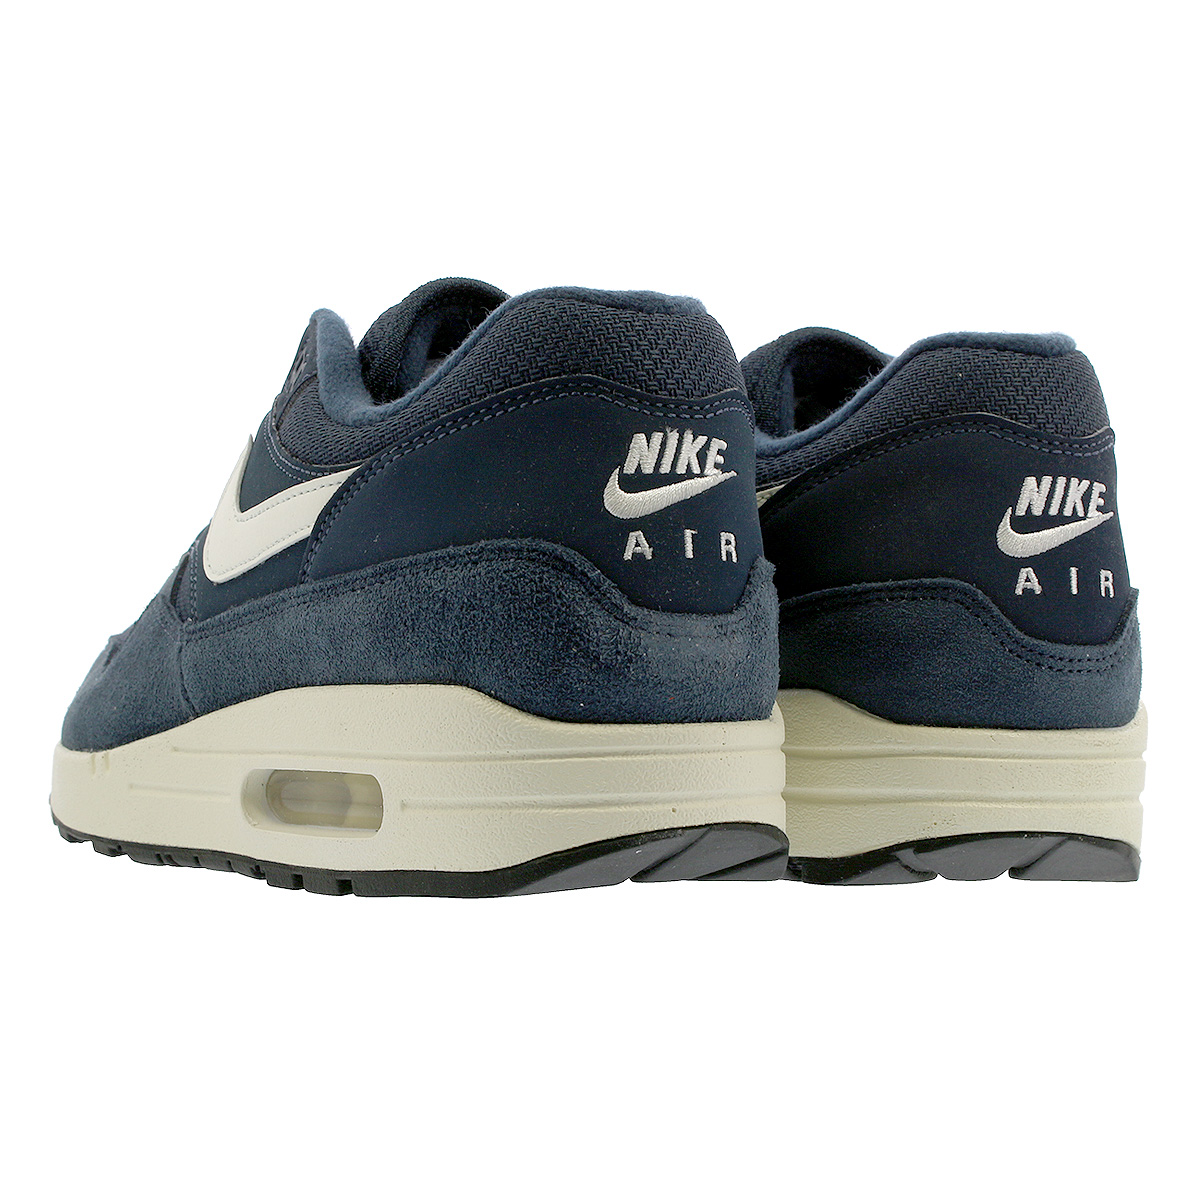 the latest f8911 db785 NIKE AIR MAX 1 Kie Ney AMAX 1 ARMORY NAVY SAIL SAIL BLACK ah8145-401